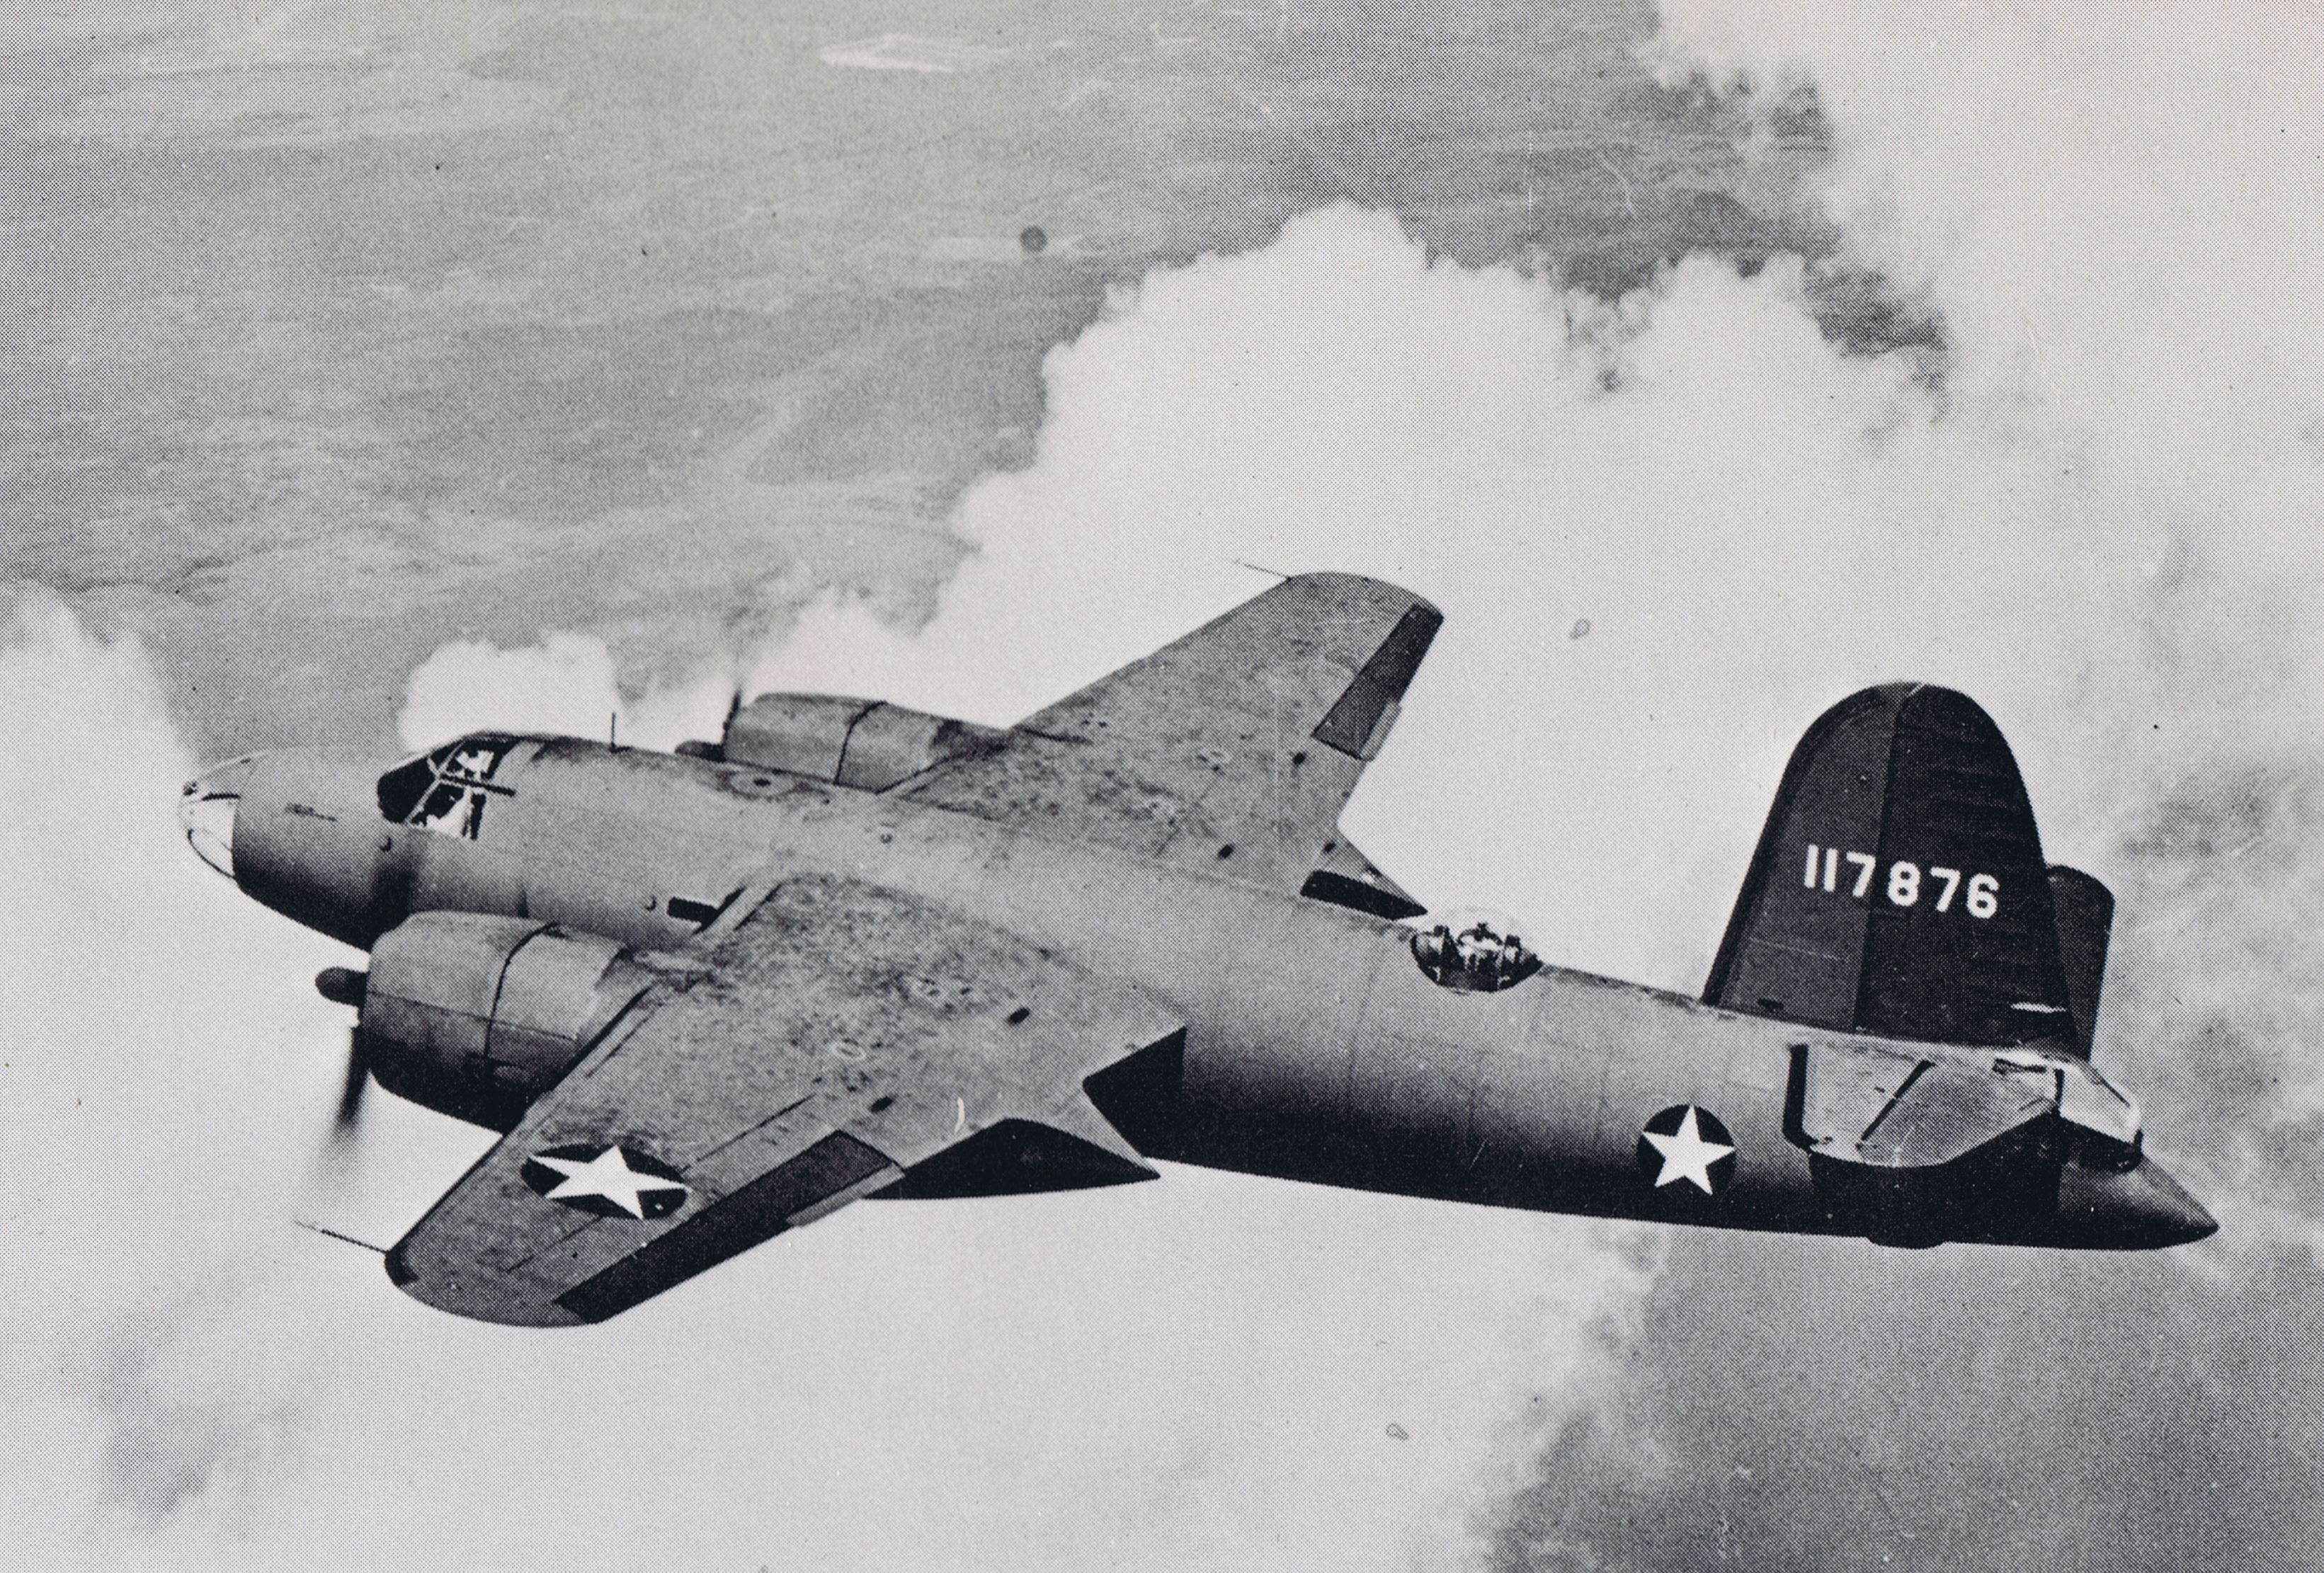 The Mitchell B-26 Marauder